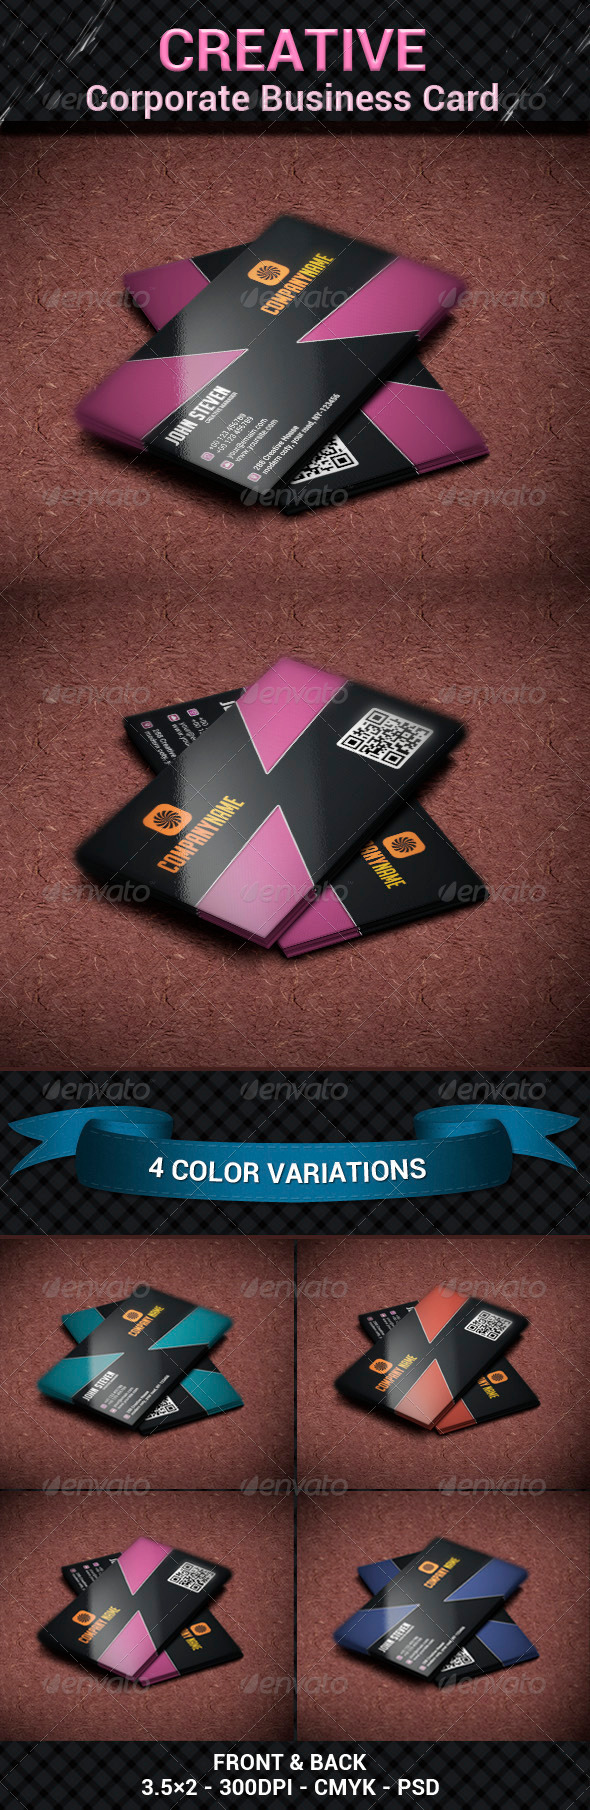 GraphicRiver Creative Corporate Business Card 6194124